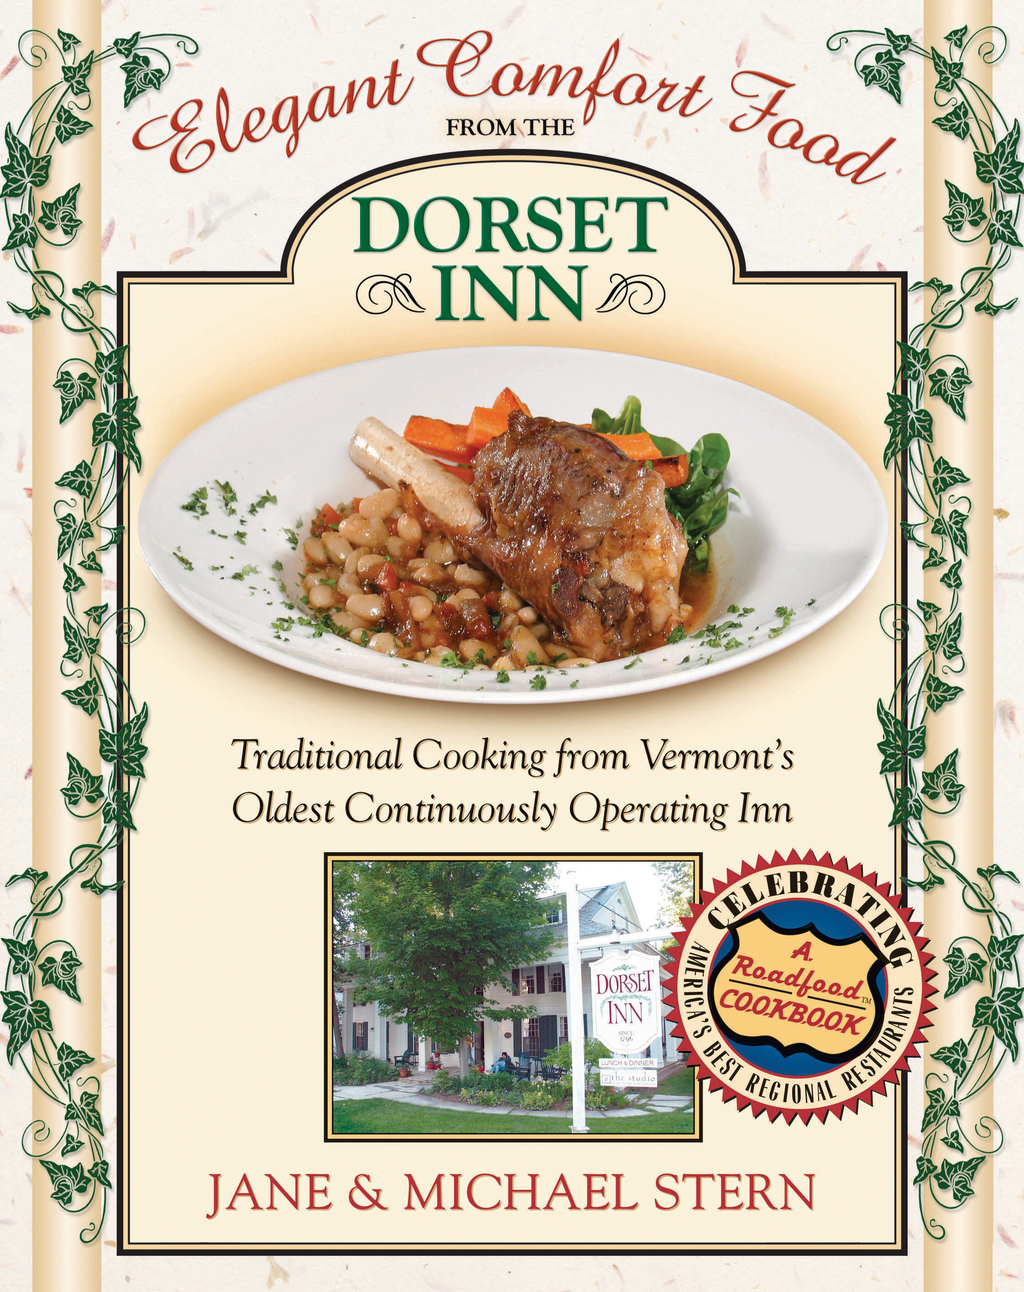 Elegant Comfort Food from Dorset Inn